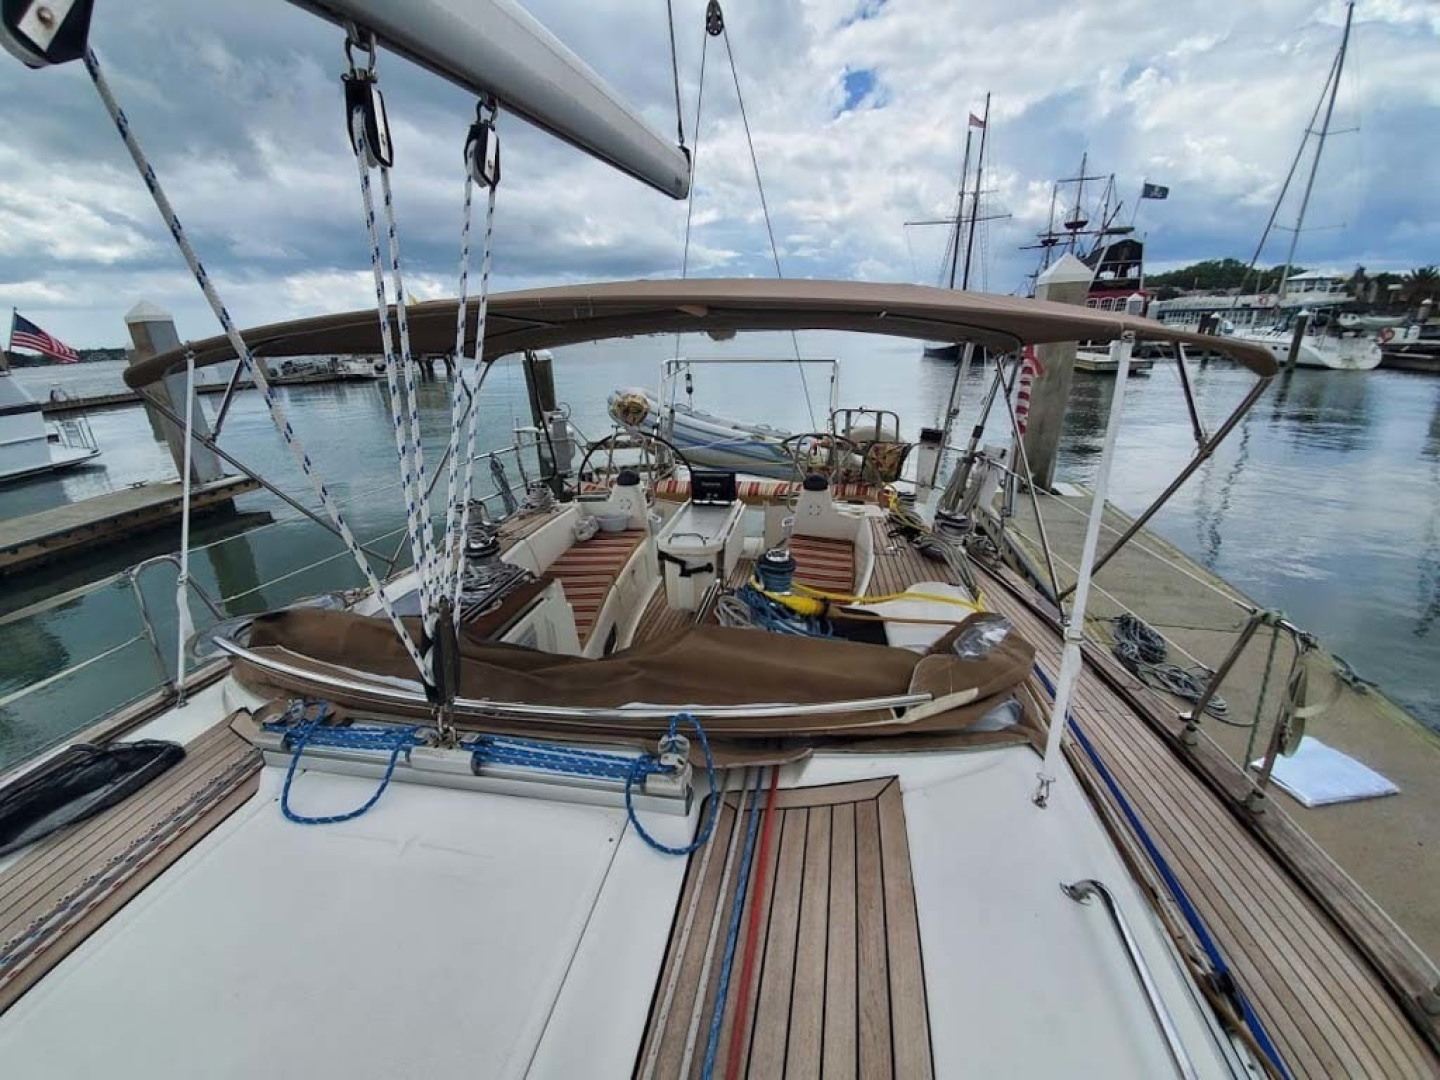 Bavaria-49 2003-BLUE CLOUD LADY Jacksonville-Florida-United States-Looking Aft With Dodger Down-1412453 | Thumbnail